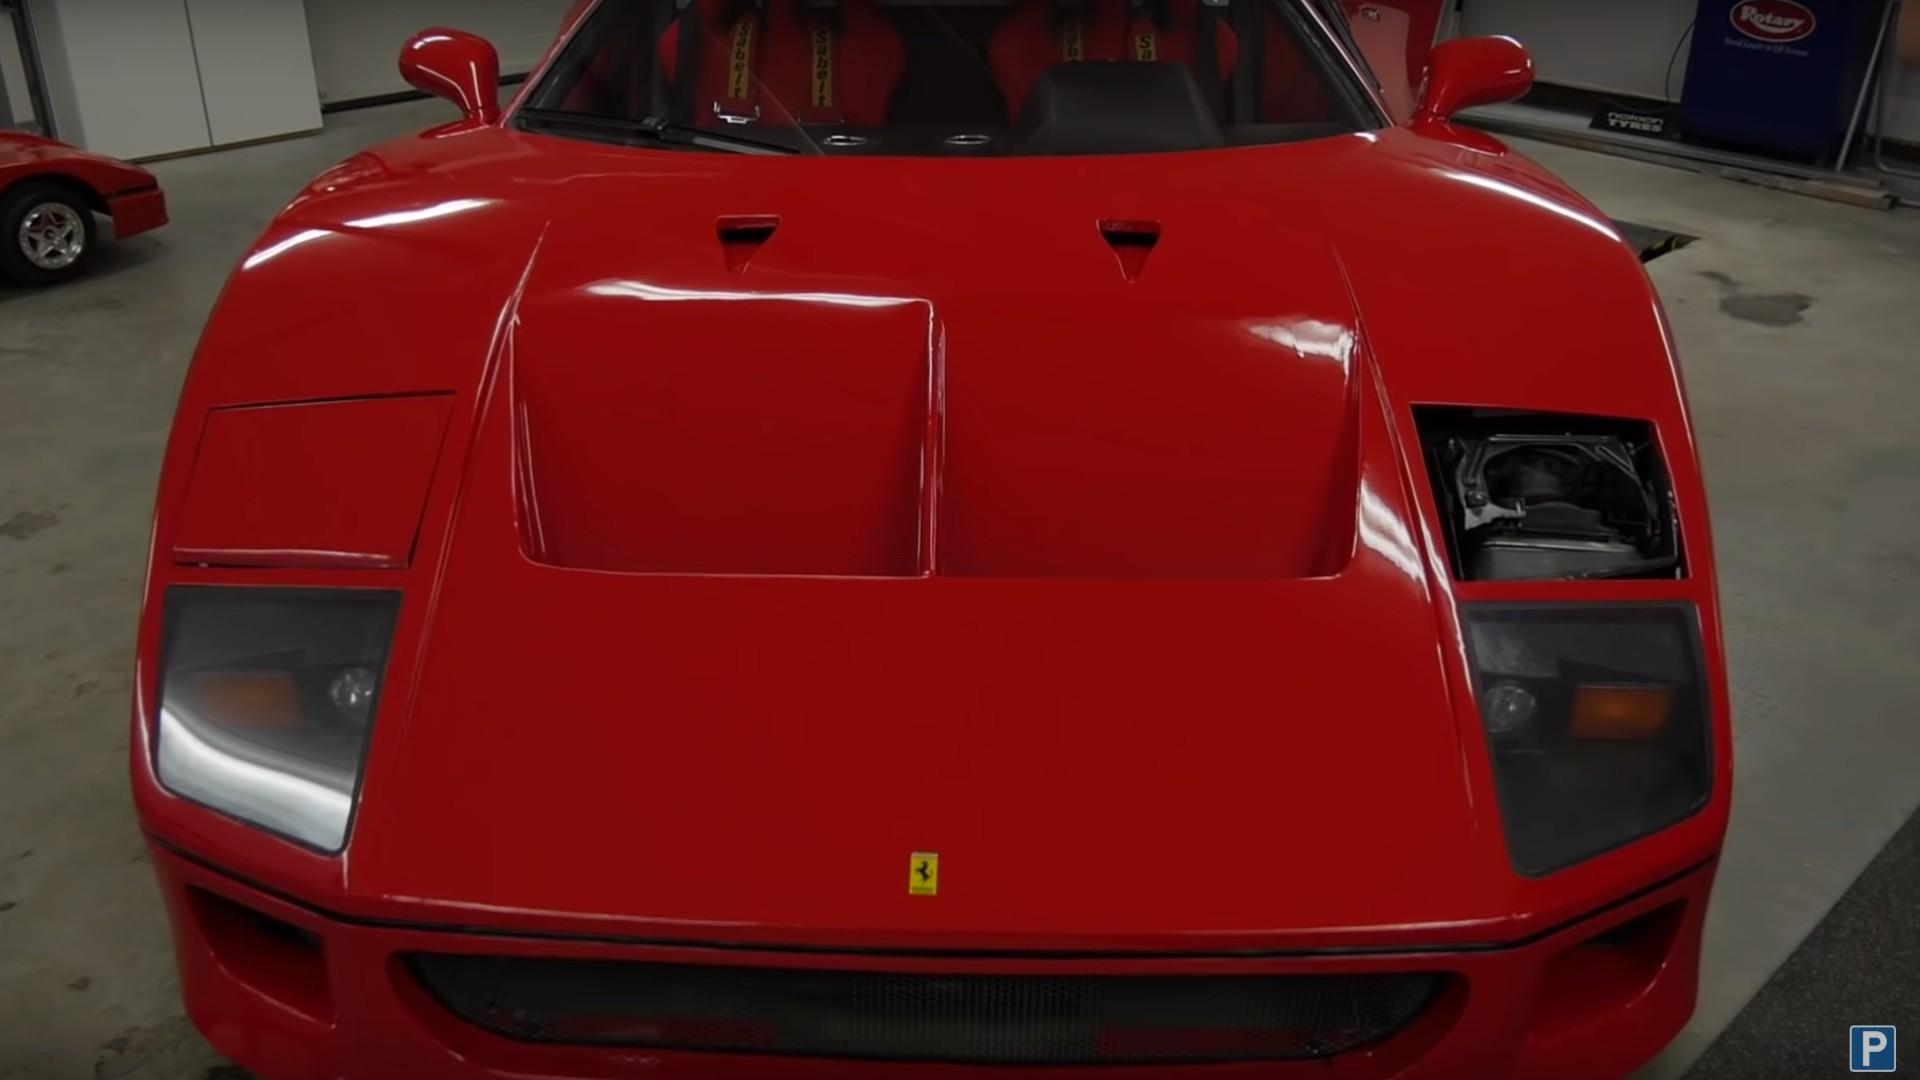 This Man Built A Homemade Ferrari F40 In His Garage